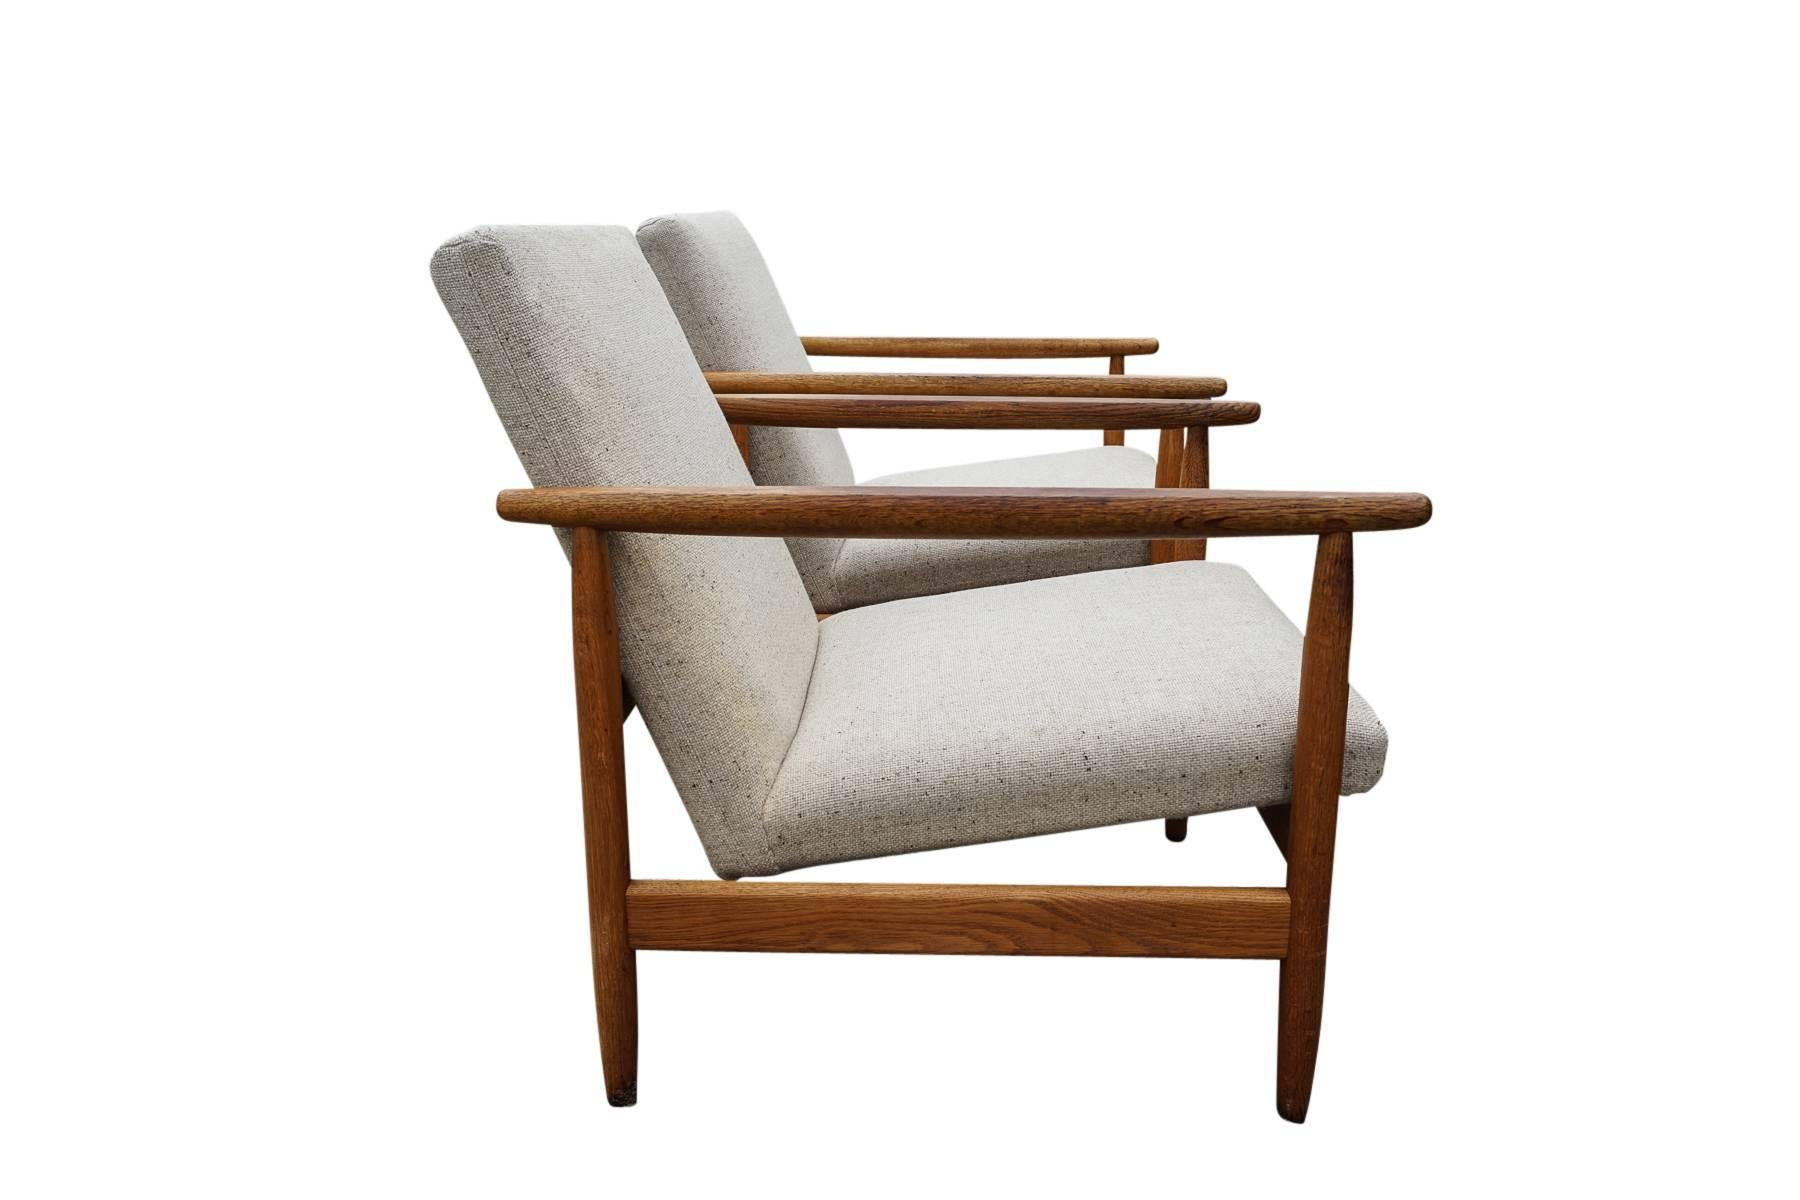 Attractive Pair Of Danish Mid Century Chairs Designed By Ejvind A. Johansson, Circa  1965